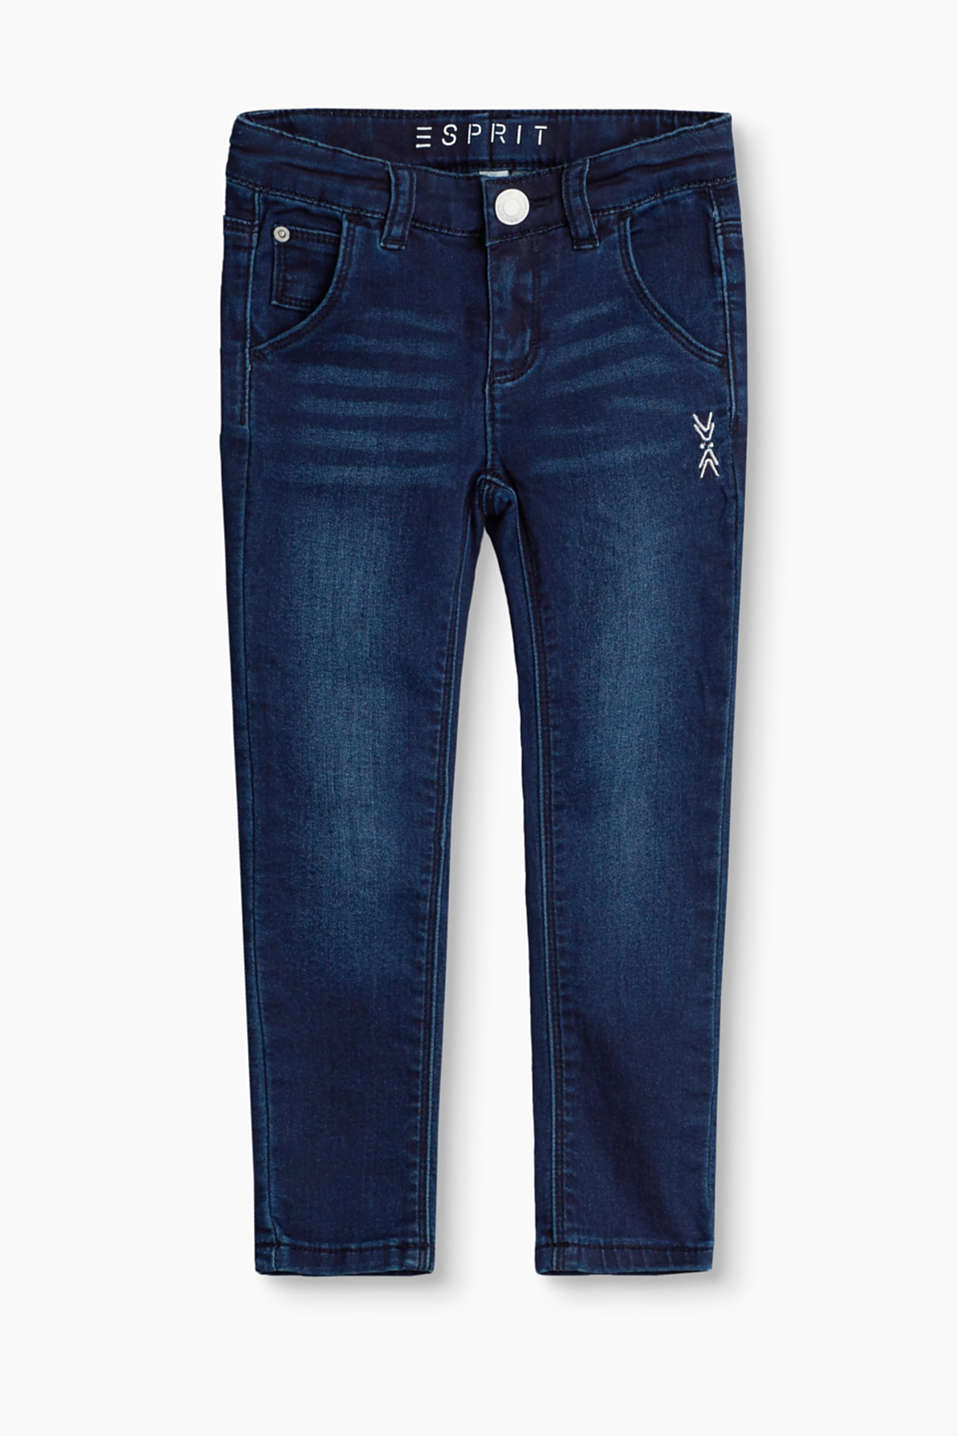 Esprit - Stretch jeans with metallic embroidery